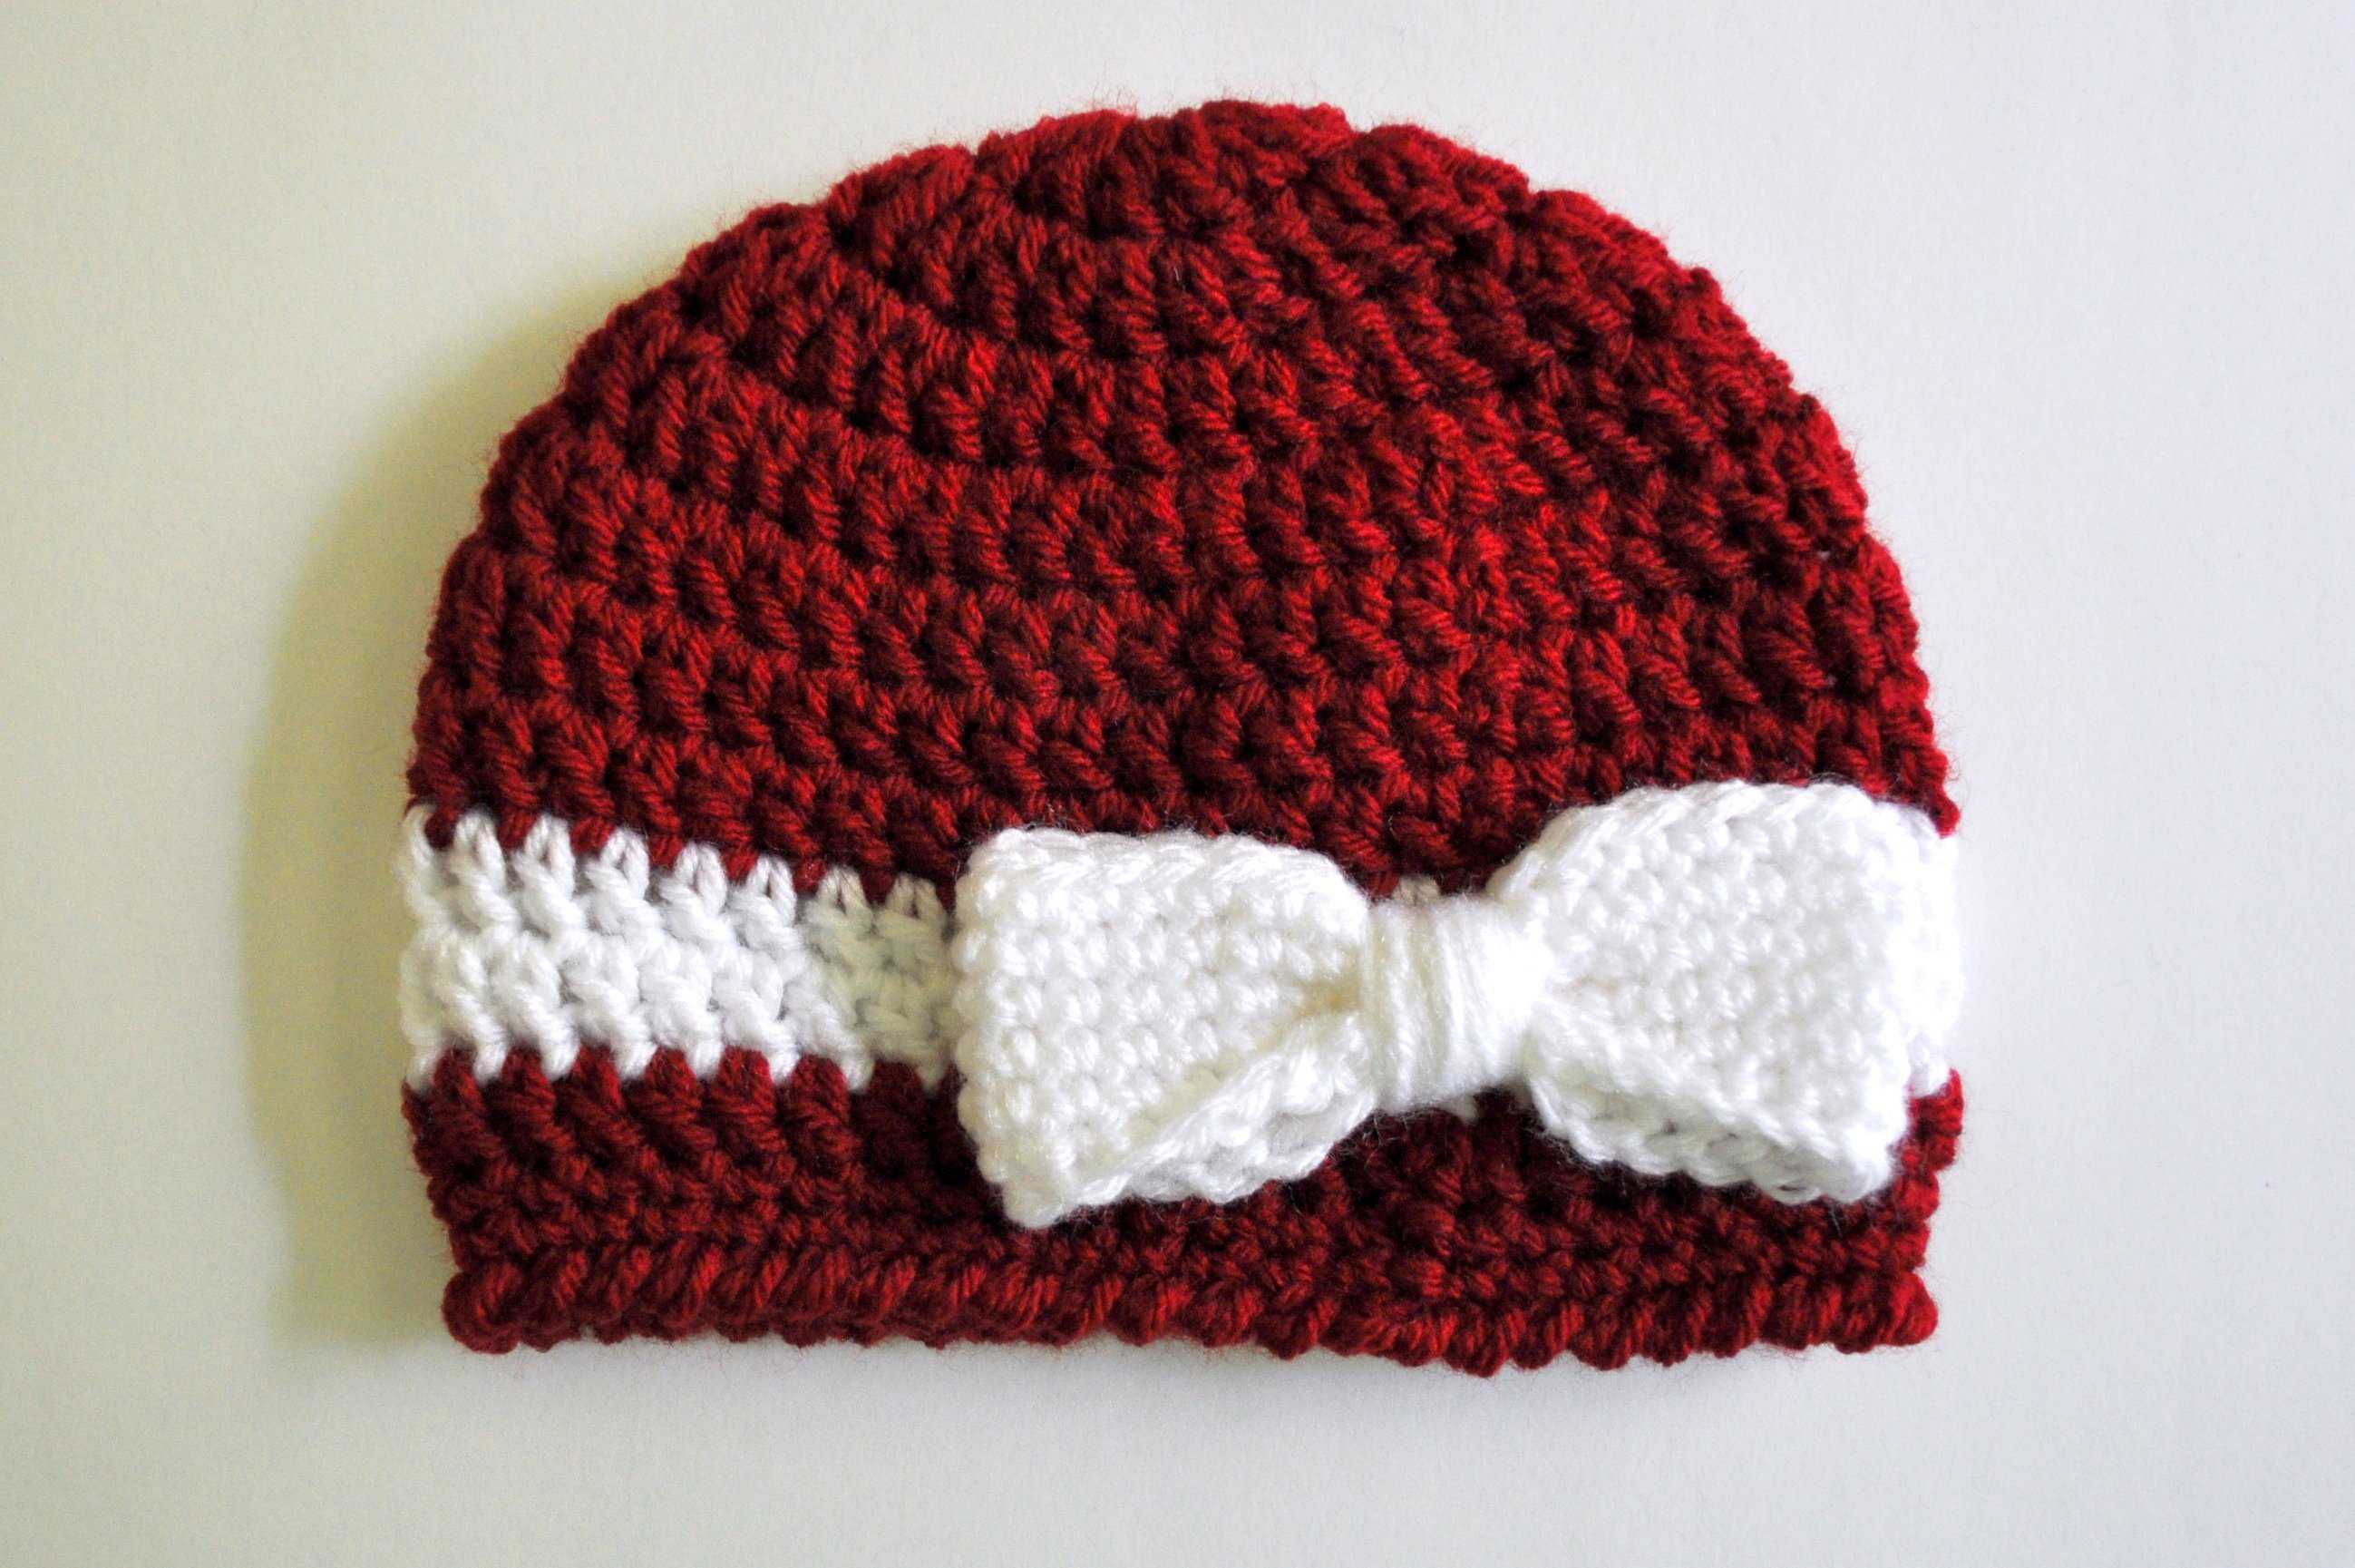 Crochet Newborn Hats : 25 Easy Crochet Bow Patterns Guide Patterns